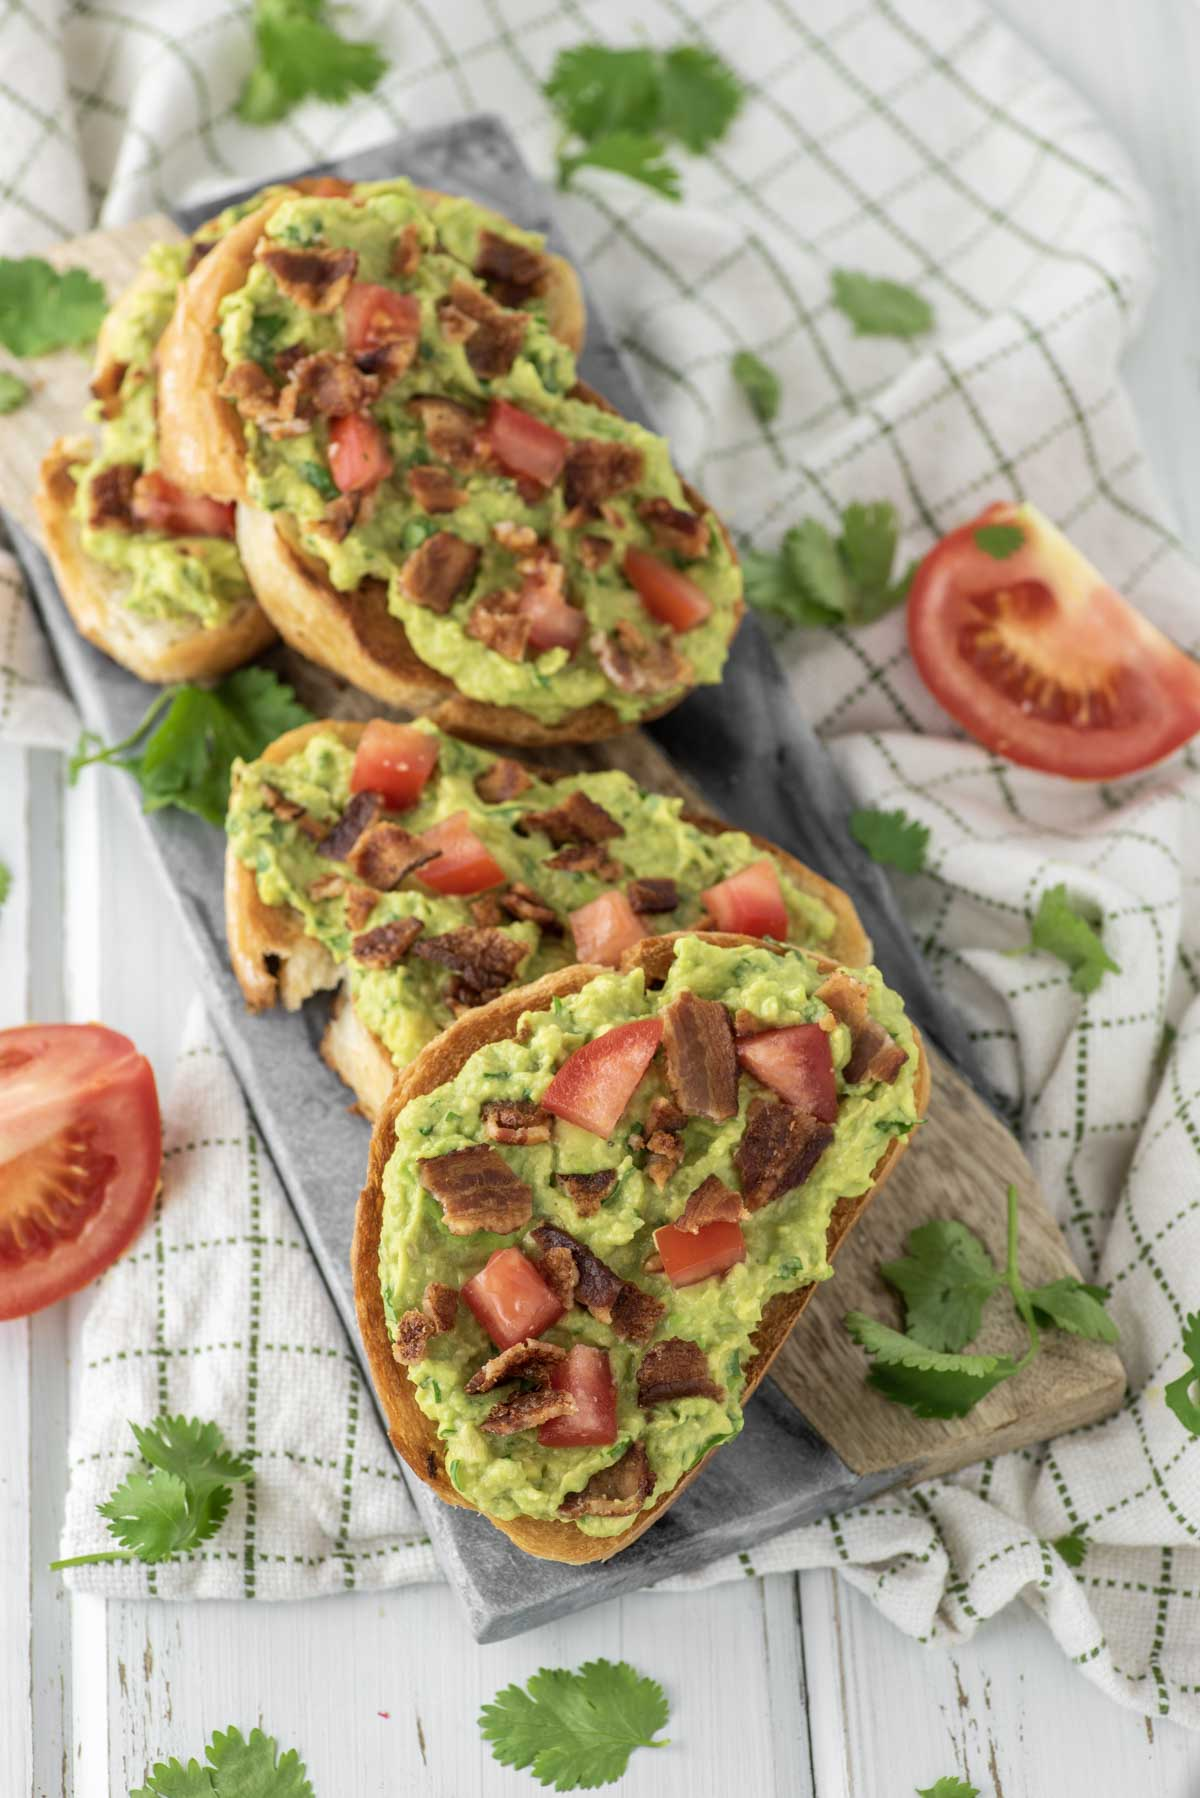 4 slices of bacon avocado toast on cutting board